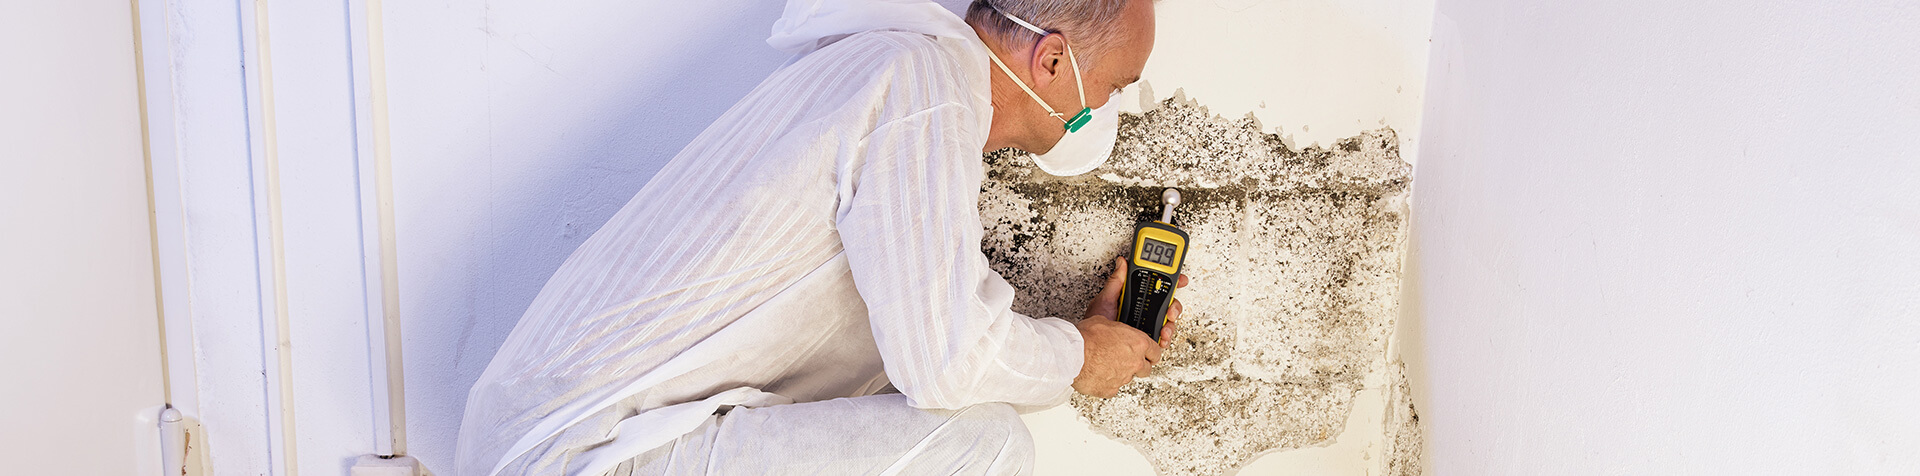 Banner image for Mold Remediation & Cleanup